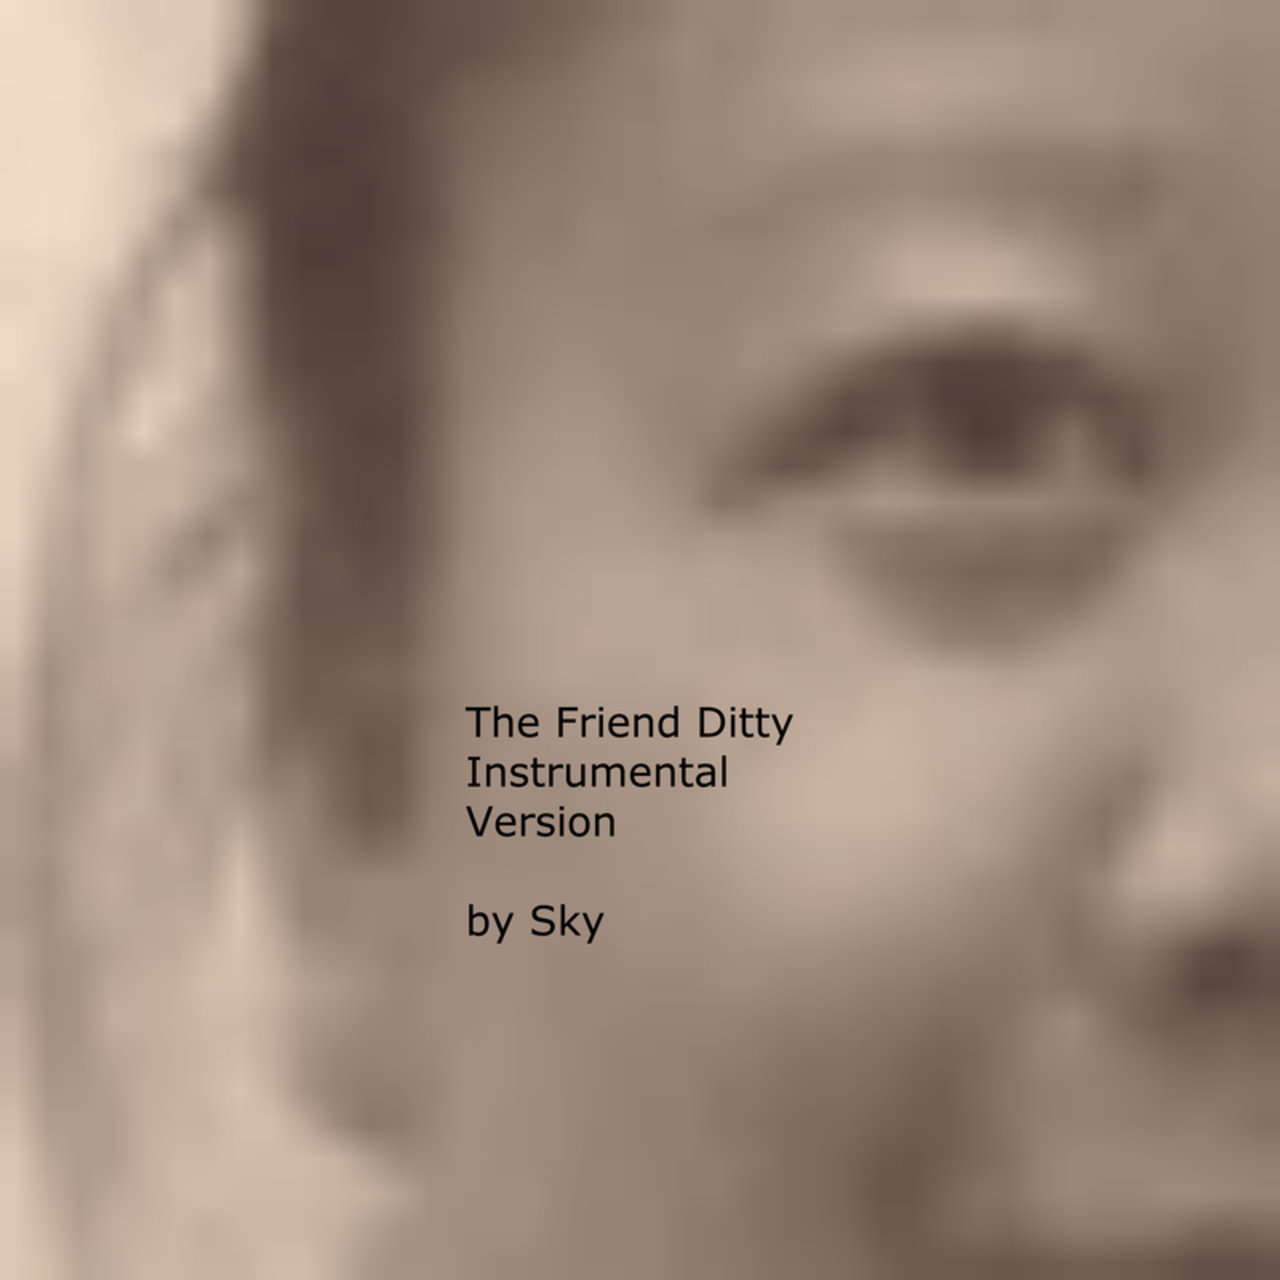 The Friend Ditty (Instrumental Version)